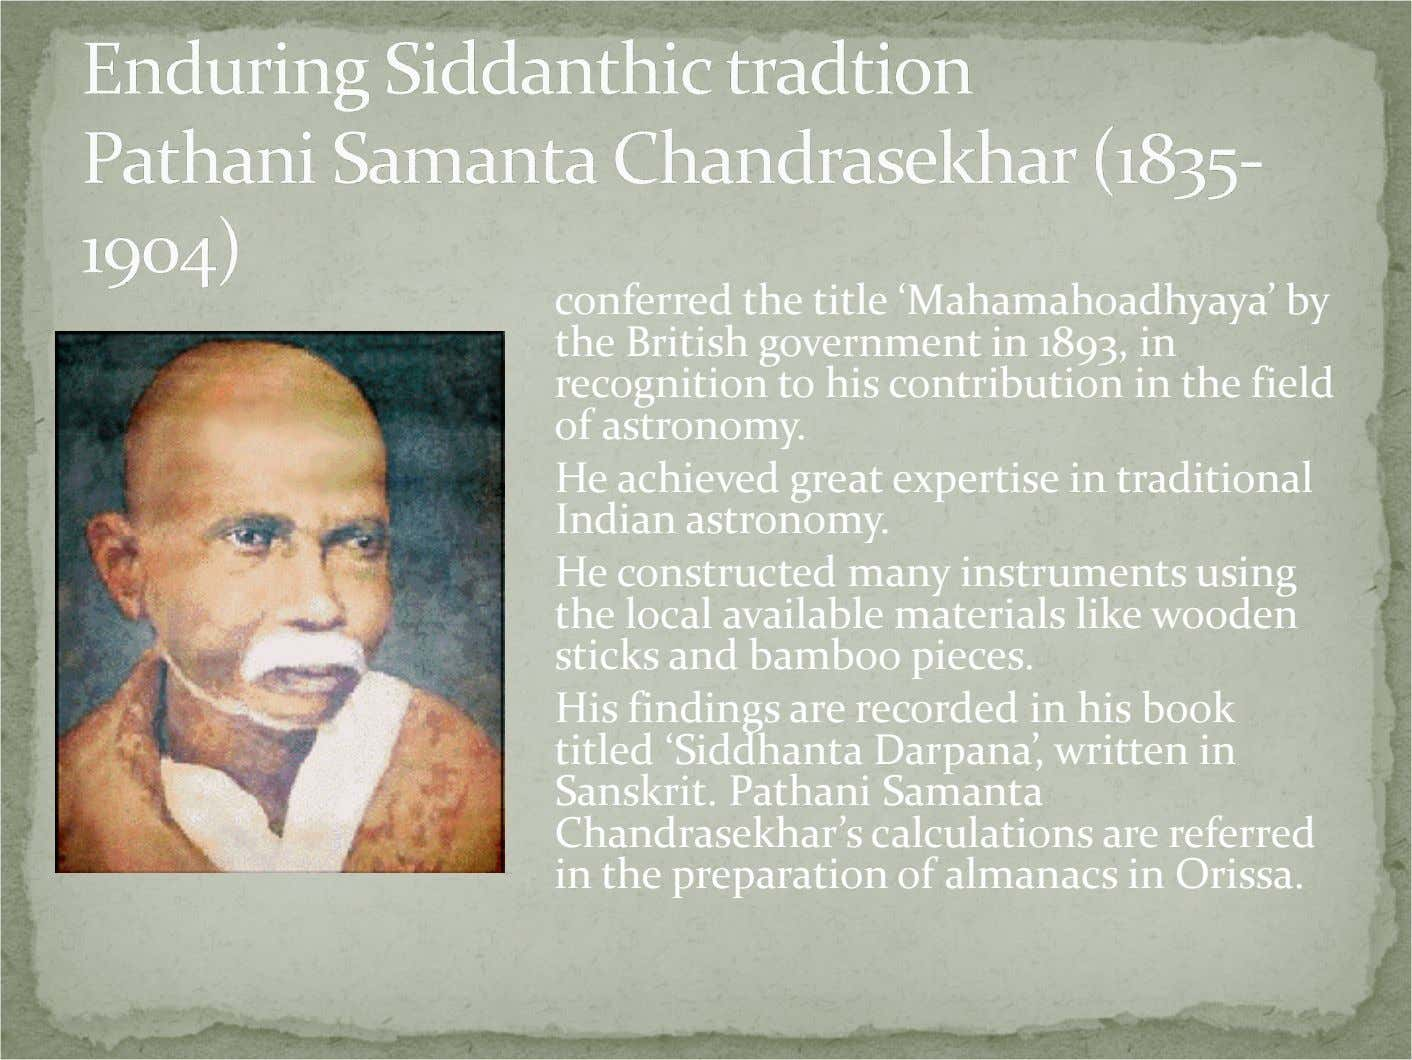 conferred the title 'Mahamahoadhyaya' by the British government in 1893, in recognition to his contribution